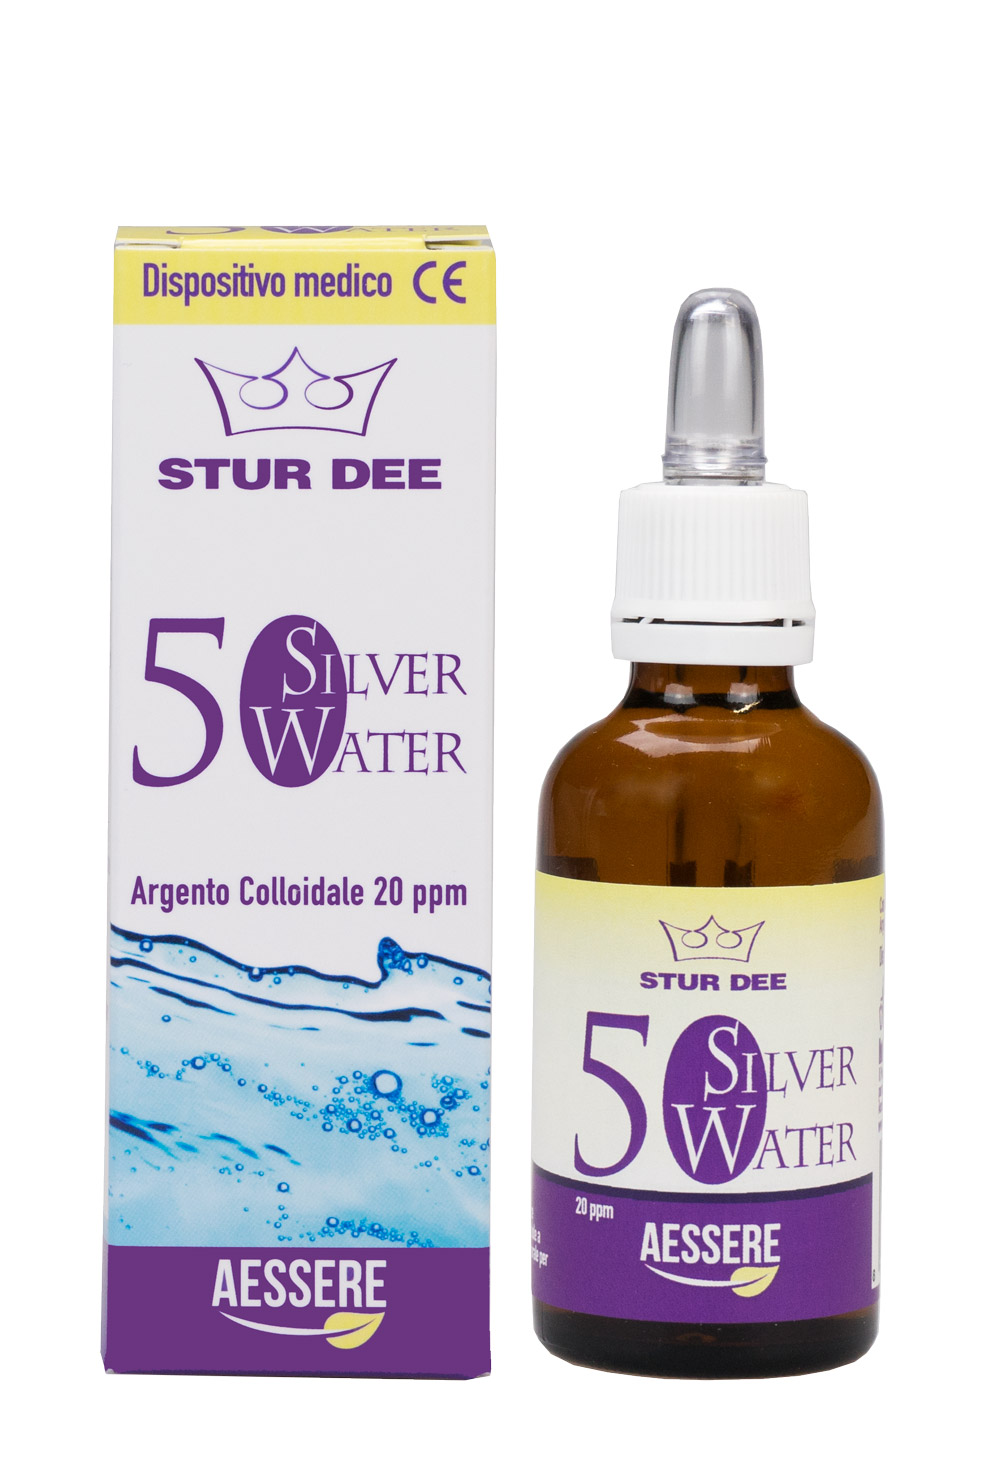 Image of Aessere Stur Dee - Silver Water Argento Colloidale 20ppm 100ml 973993494